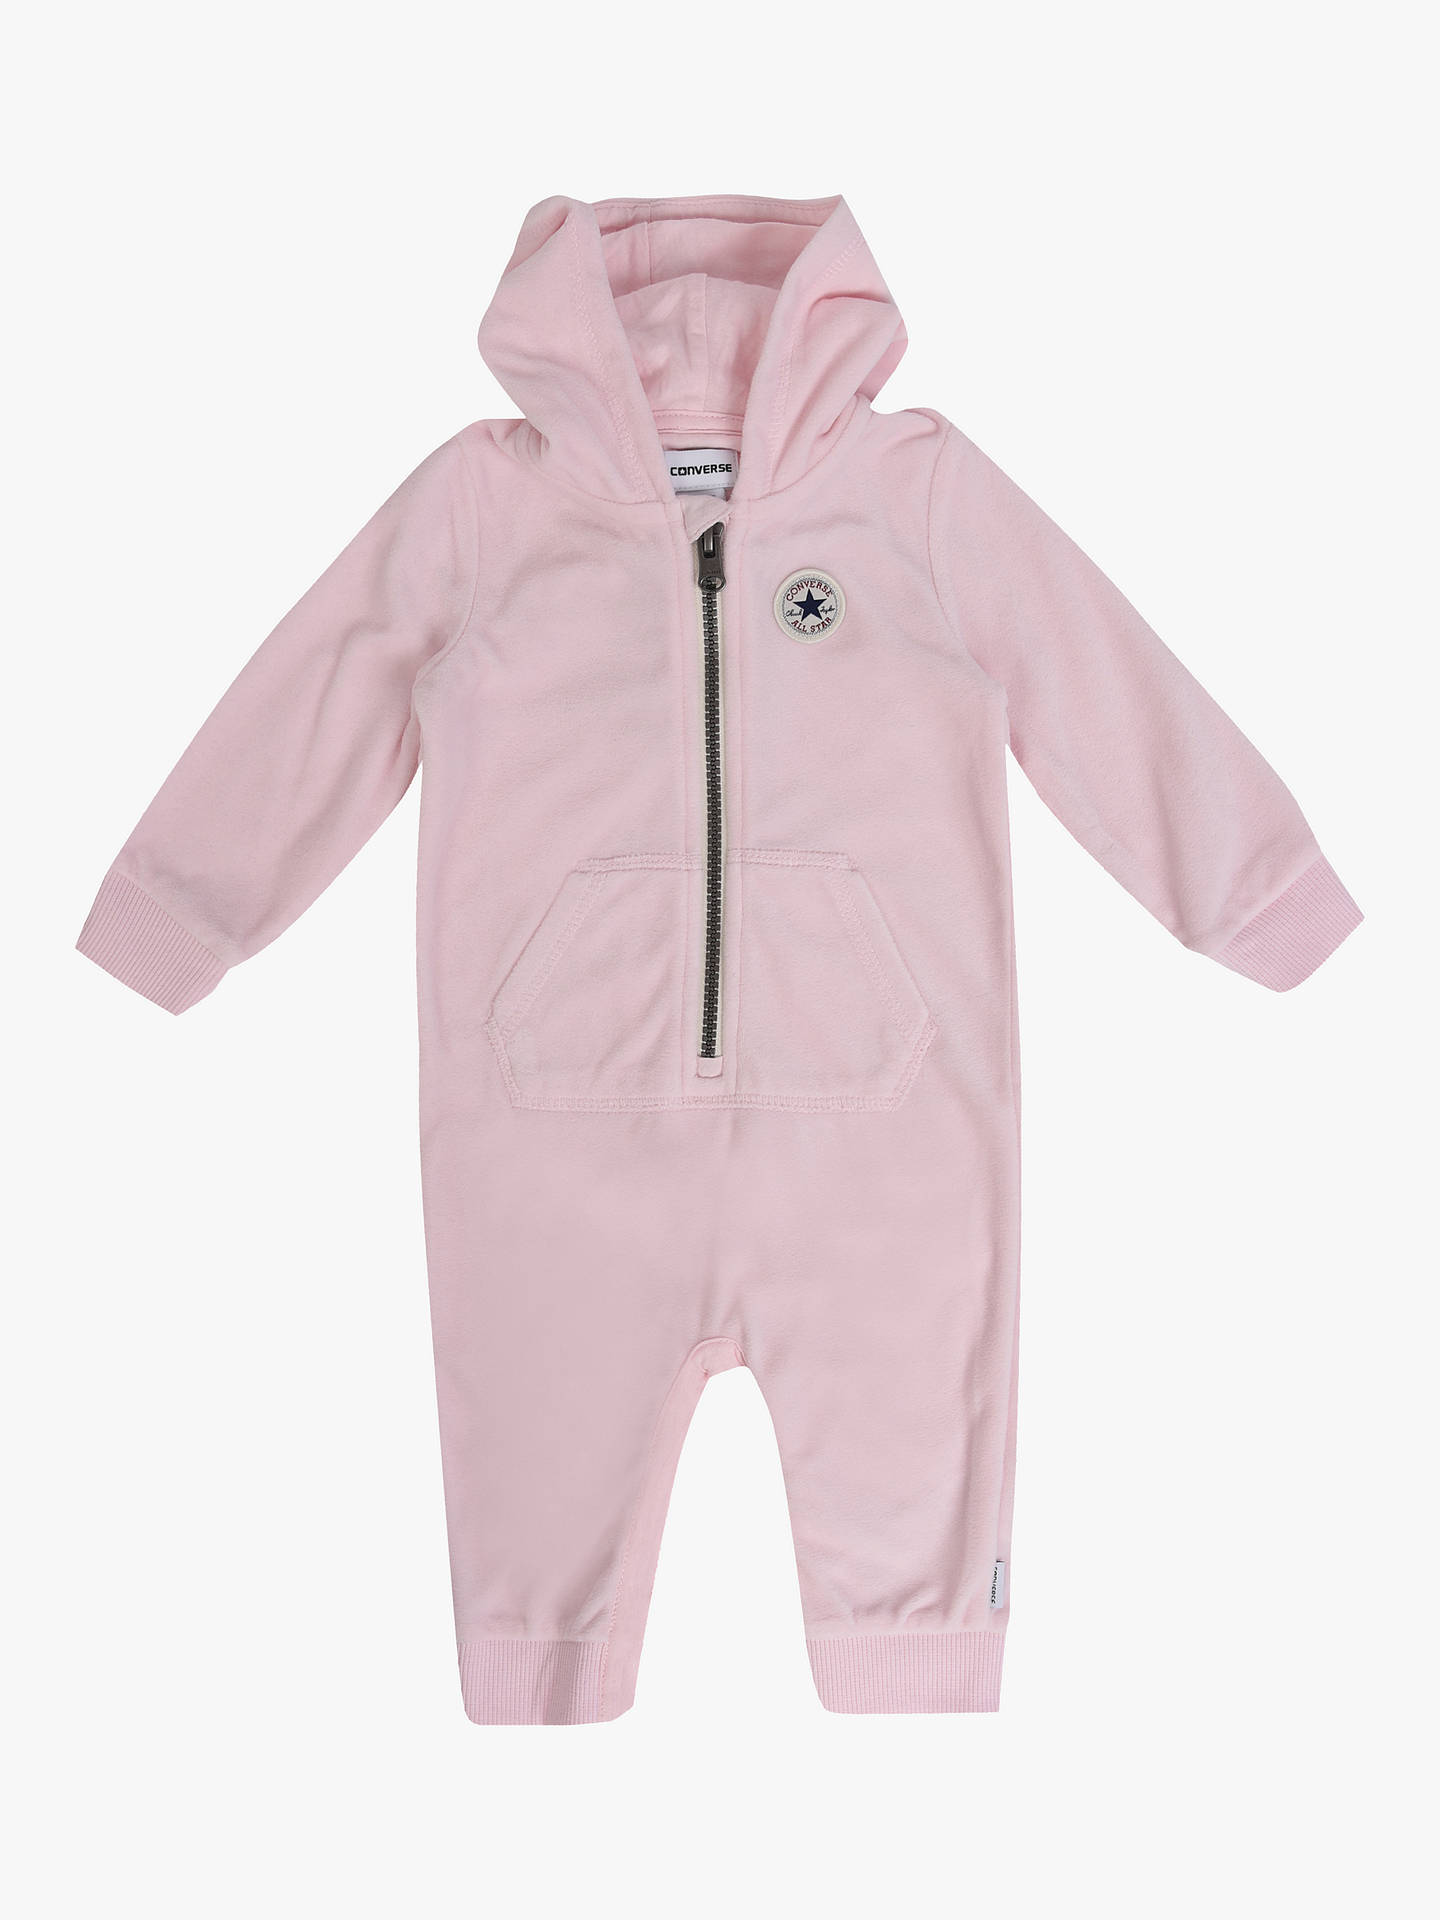 da81bba099a2 Converse Baby Velour Hooded Romper at John Lewis   Partners